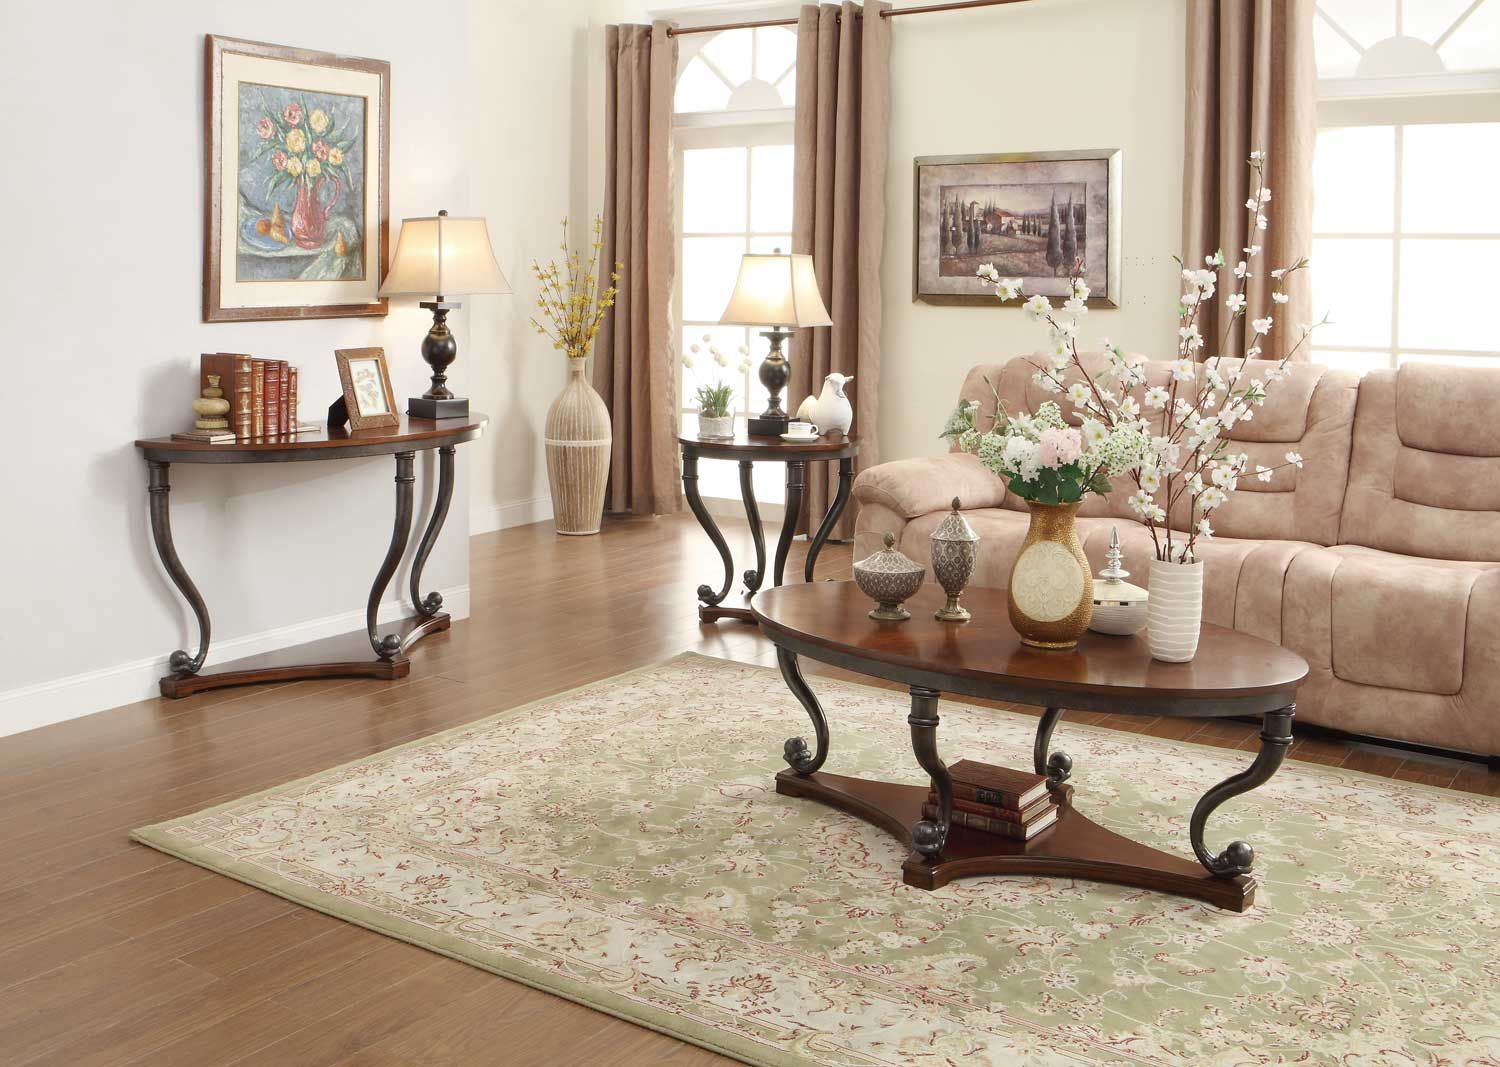 Homelegance Panne Occasional Table Set Cherry Curved Lines Flow Top To Bottom In The Panne Co Cherry Wood Coffee Table Coffee Table Wood Coffee Table Setting [ 1067 x 1500 Pixel ]